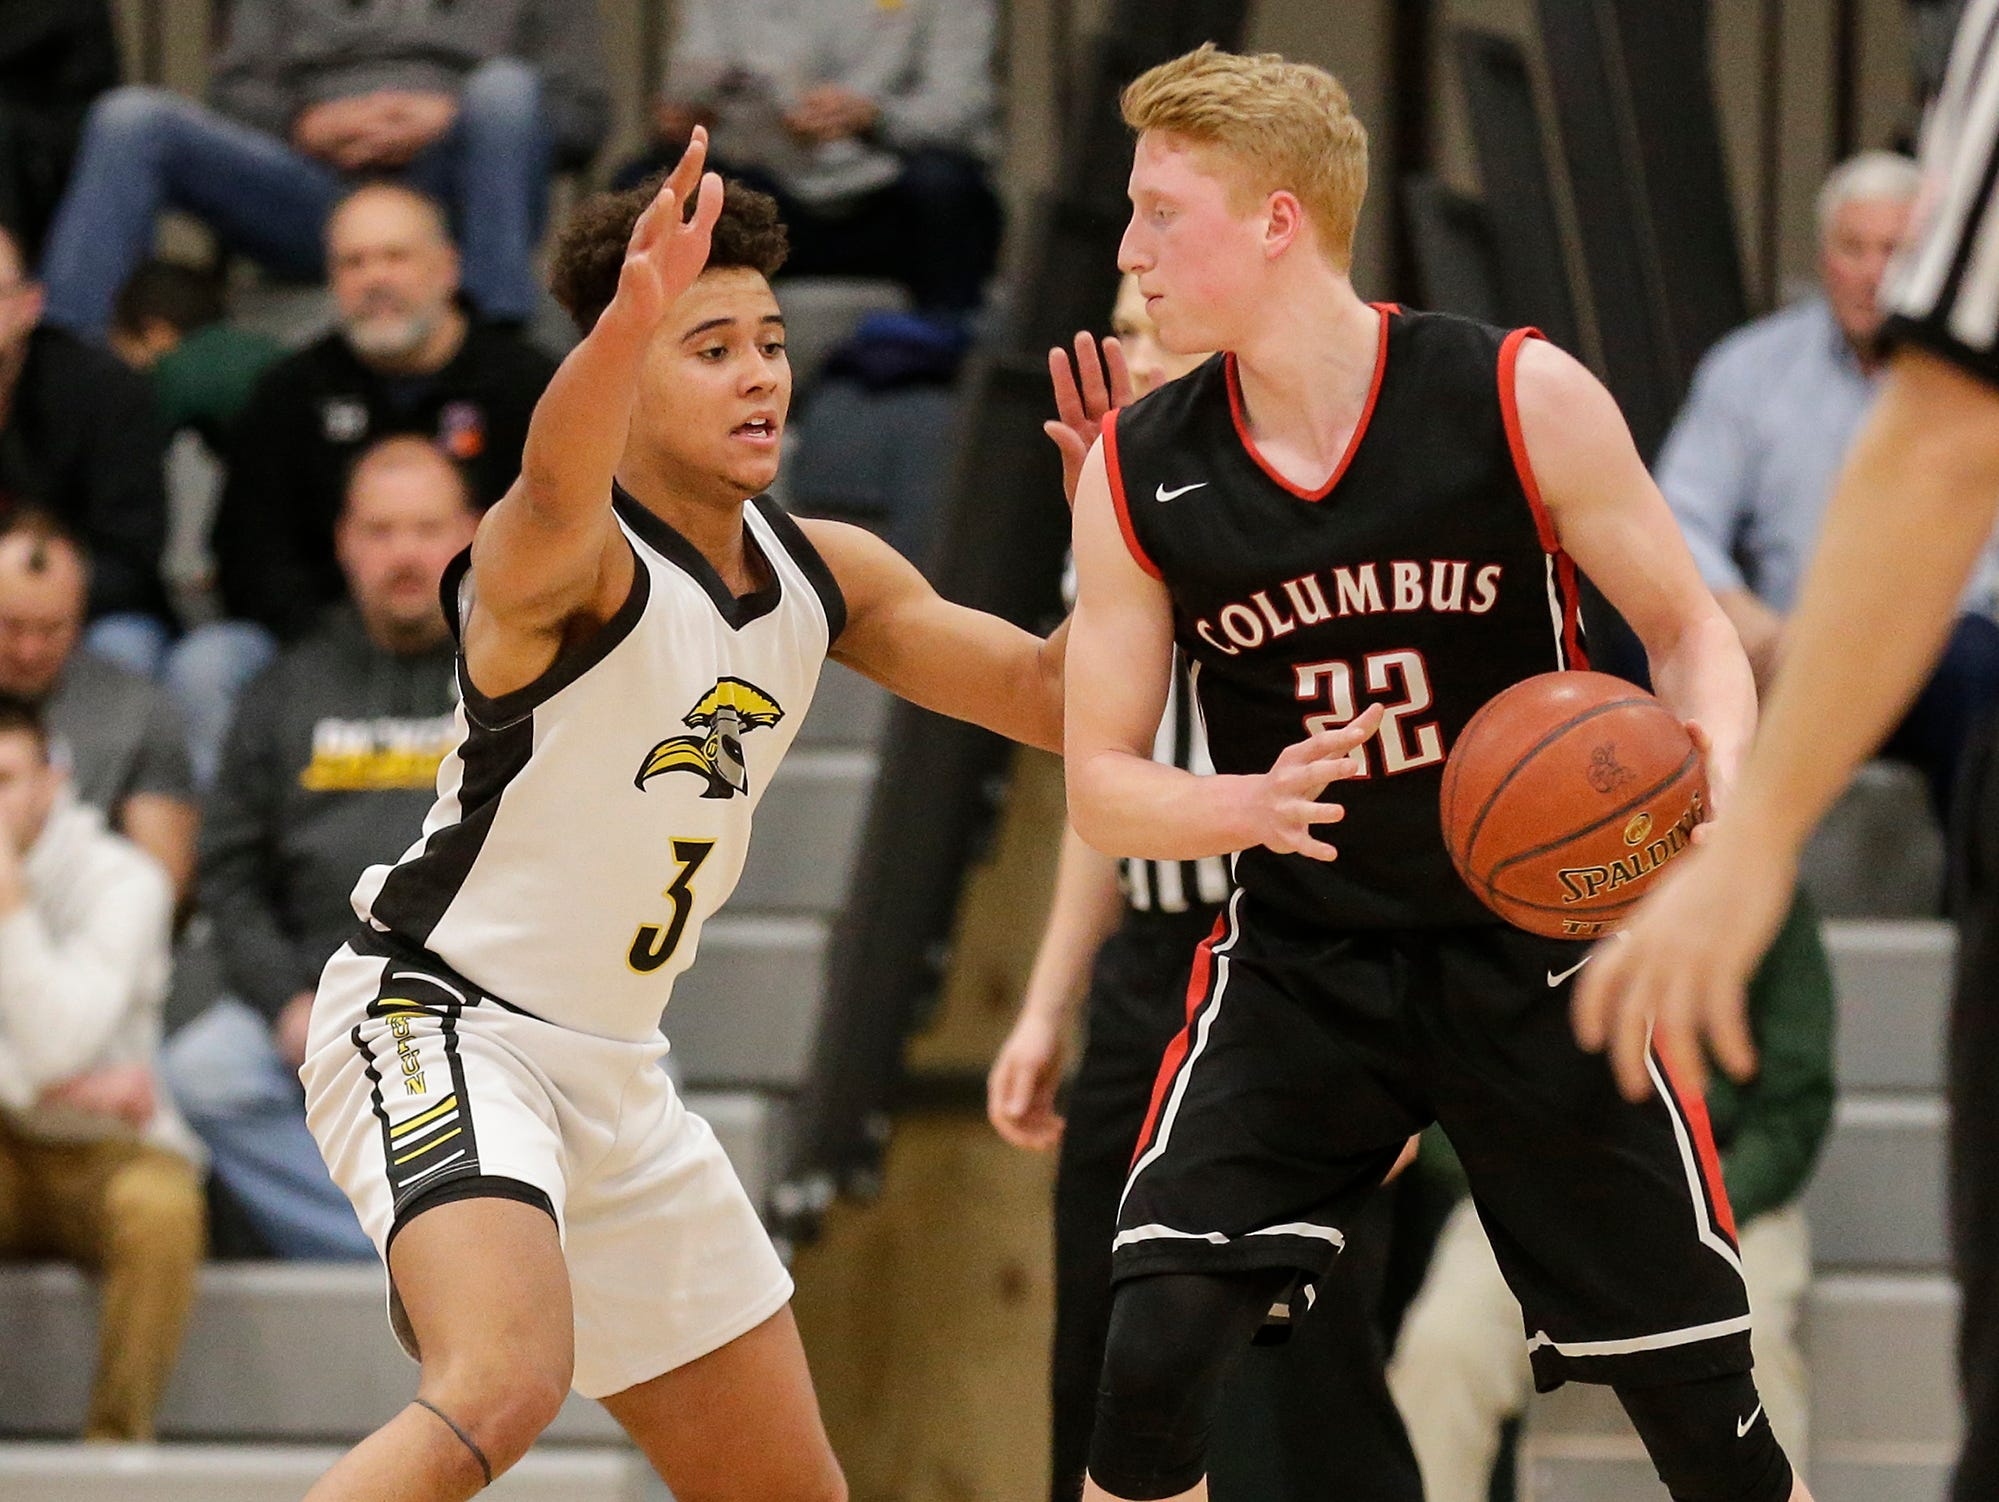 Waupun High School boys basketball's Quintin Winterfeldt plays defense against Columbus High School's Trent Casper during their WIAA division 3 sectional semi-final game Thursday, March 7, 2019 in Beaver Dam, Wis. Waupun won the game 79-36. Doug Raflik/USA TODAY NETWORK-Wisconsin